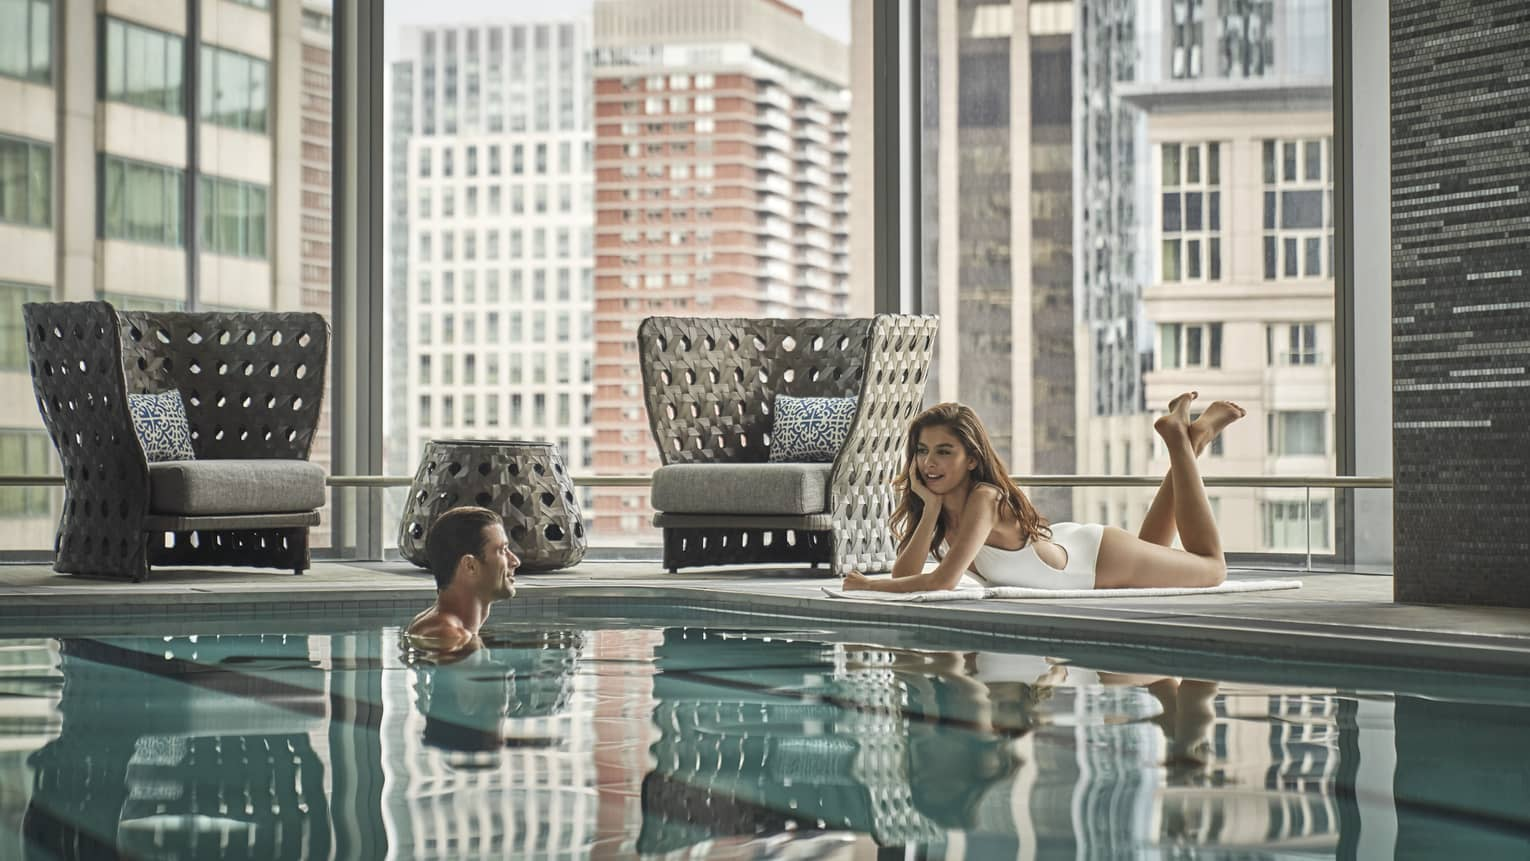 Woman in white bathing suit lounges poolside, talking to a man in the pool with the Boston skyline behind them